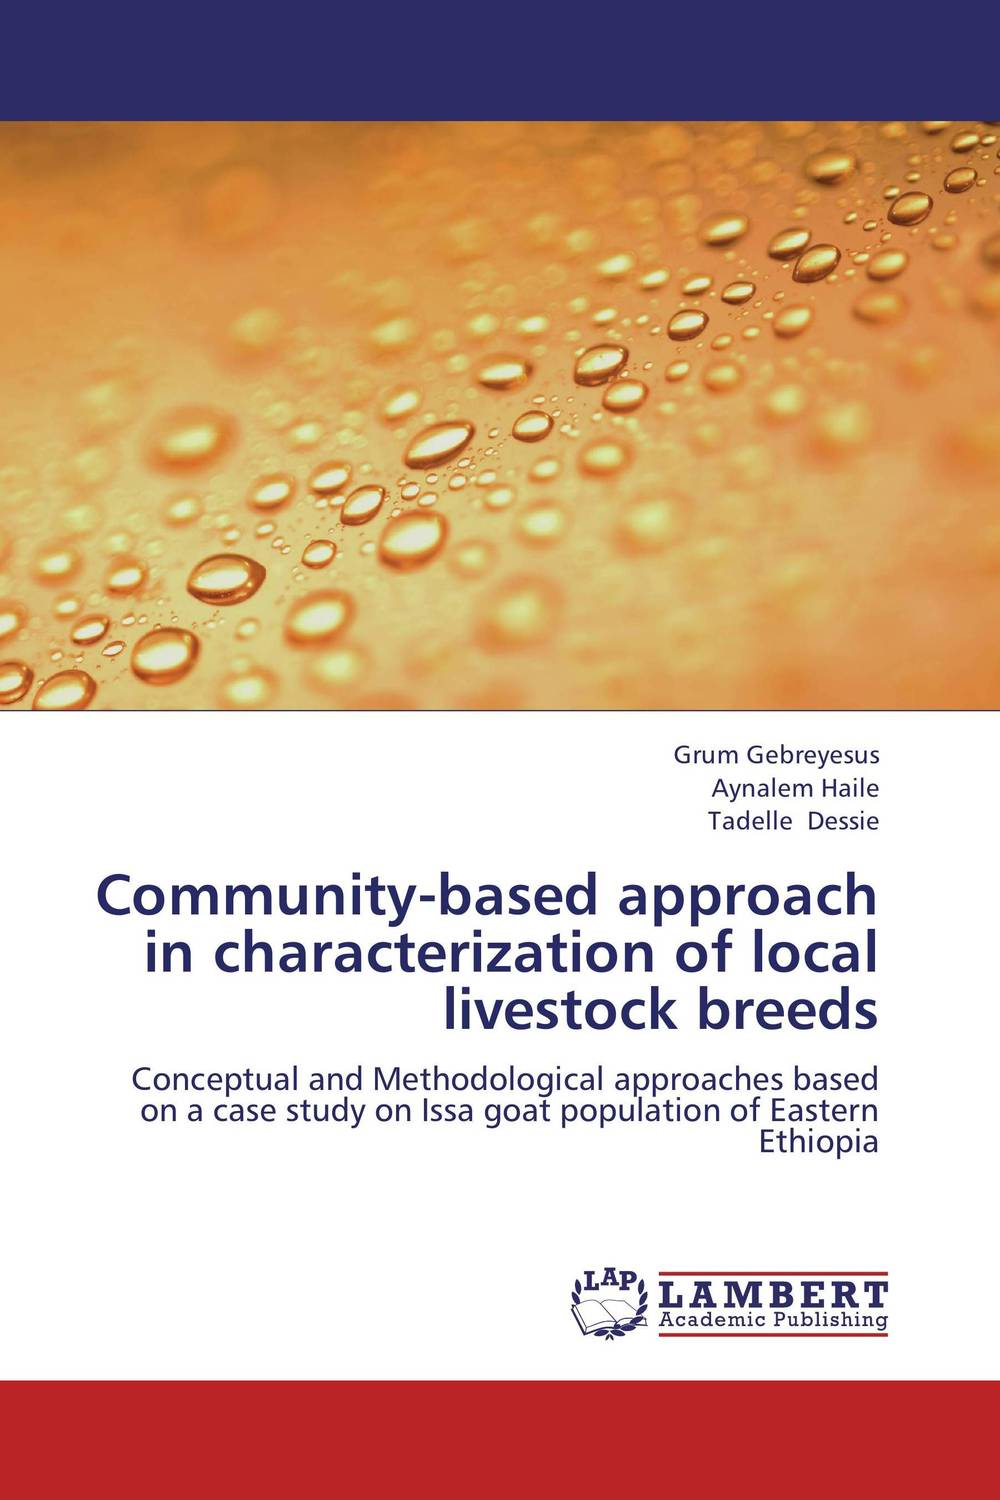 Community-based approach in characterization of local livestock breeds purnima sareen sundeep kumar and rakesh singh molecular and pathological characterization of slow rusting in wheat